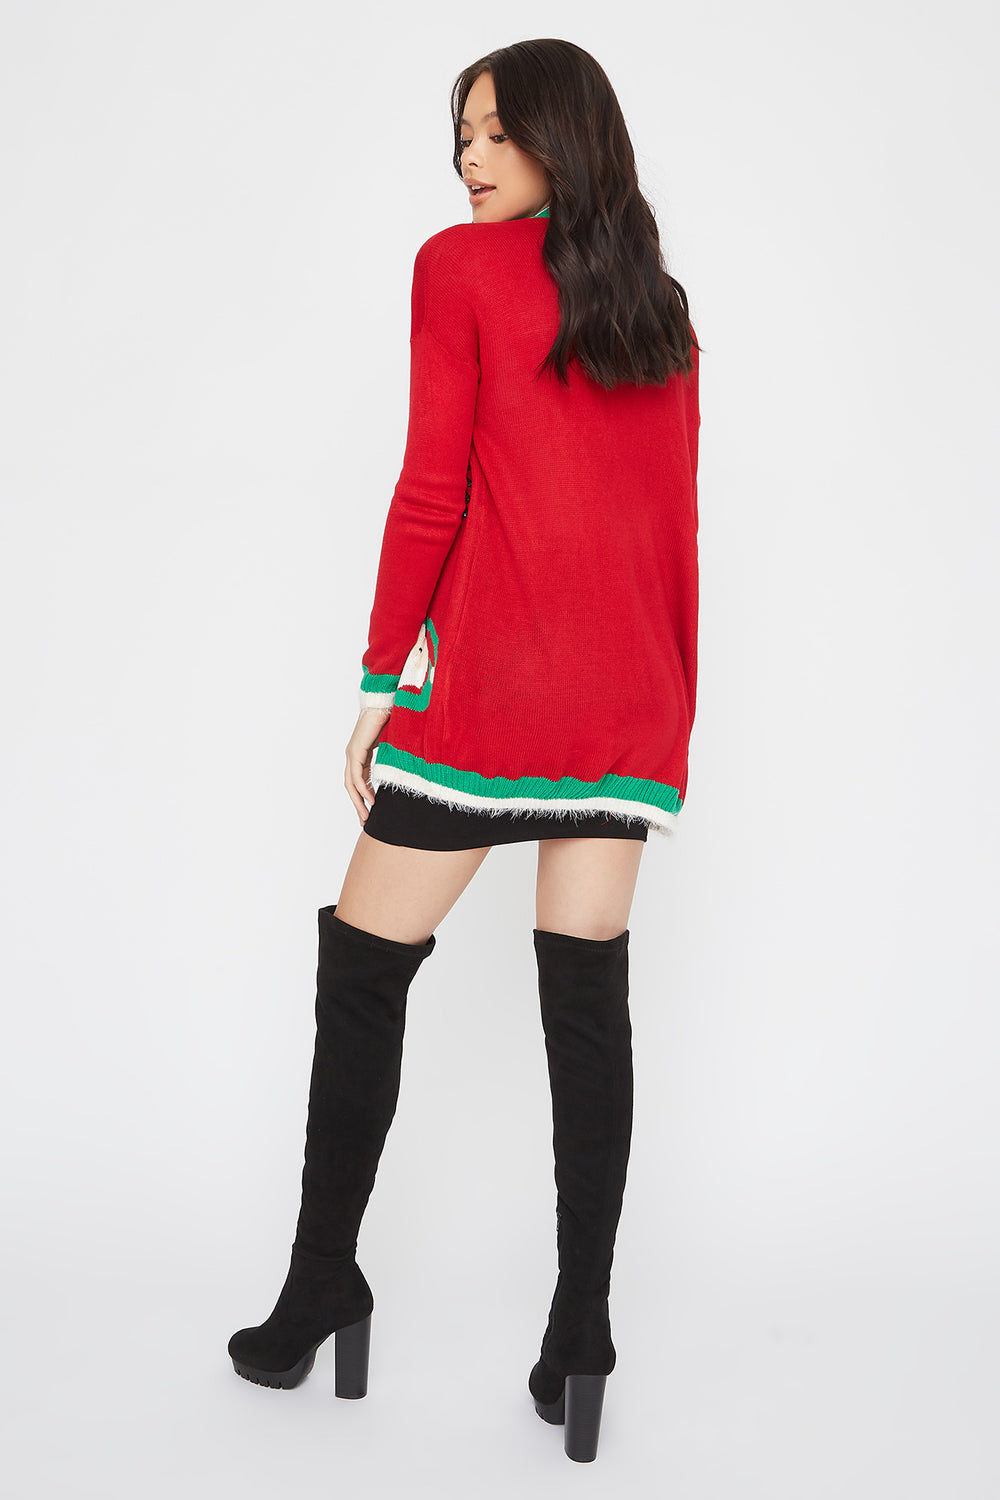 Jingle Bells Graphic Christmas Cardigan Red